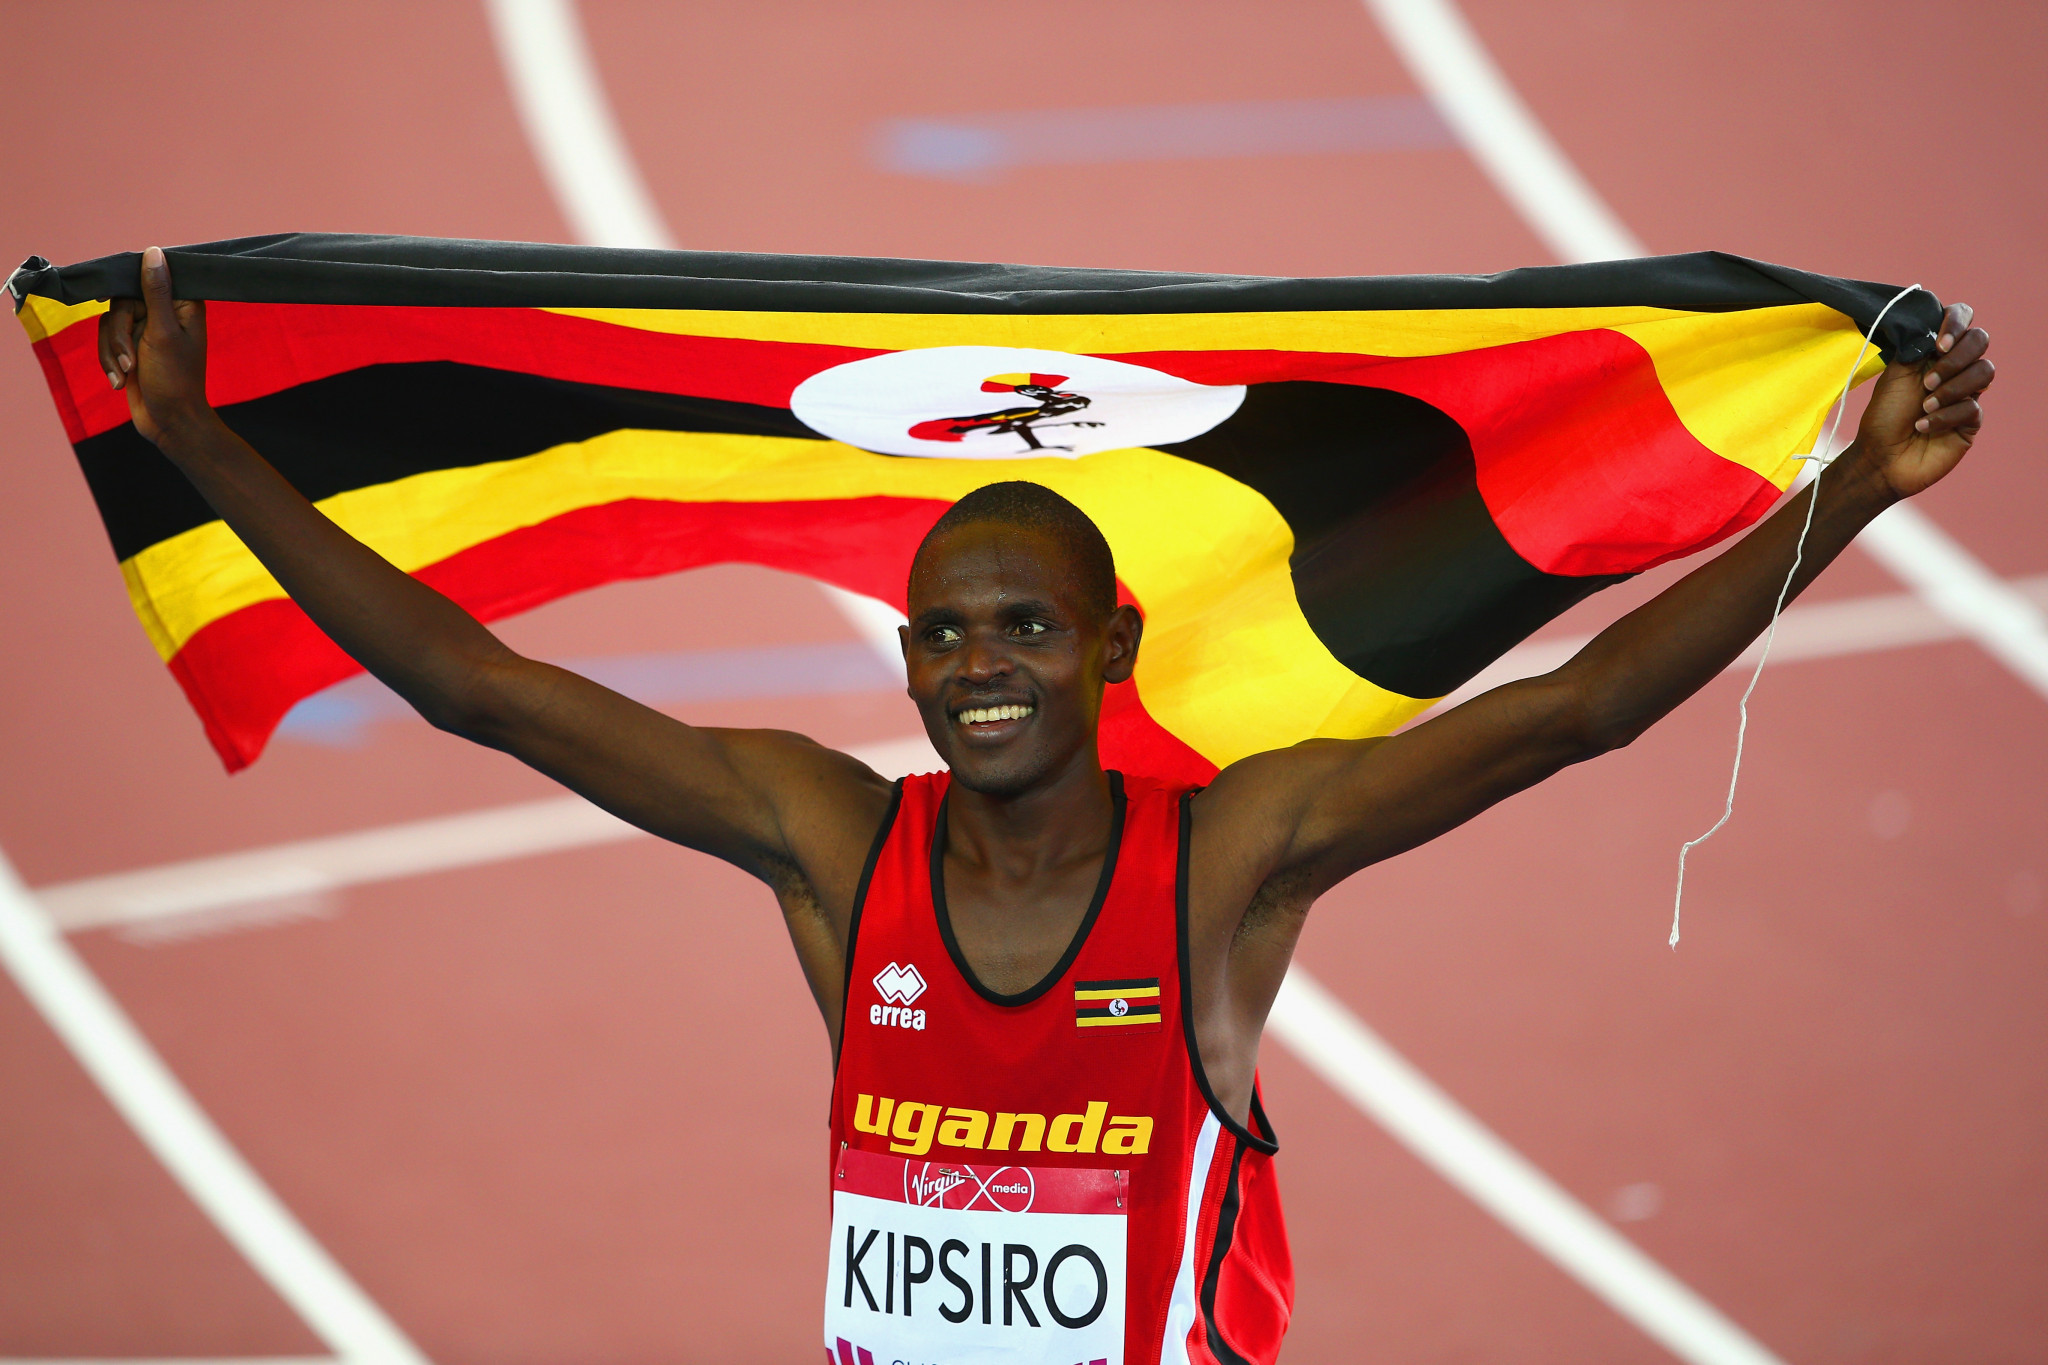 Moses Kipsiro won a gold medal for Uganda at Glasgow 2014 ©Getty Images